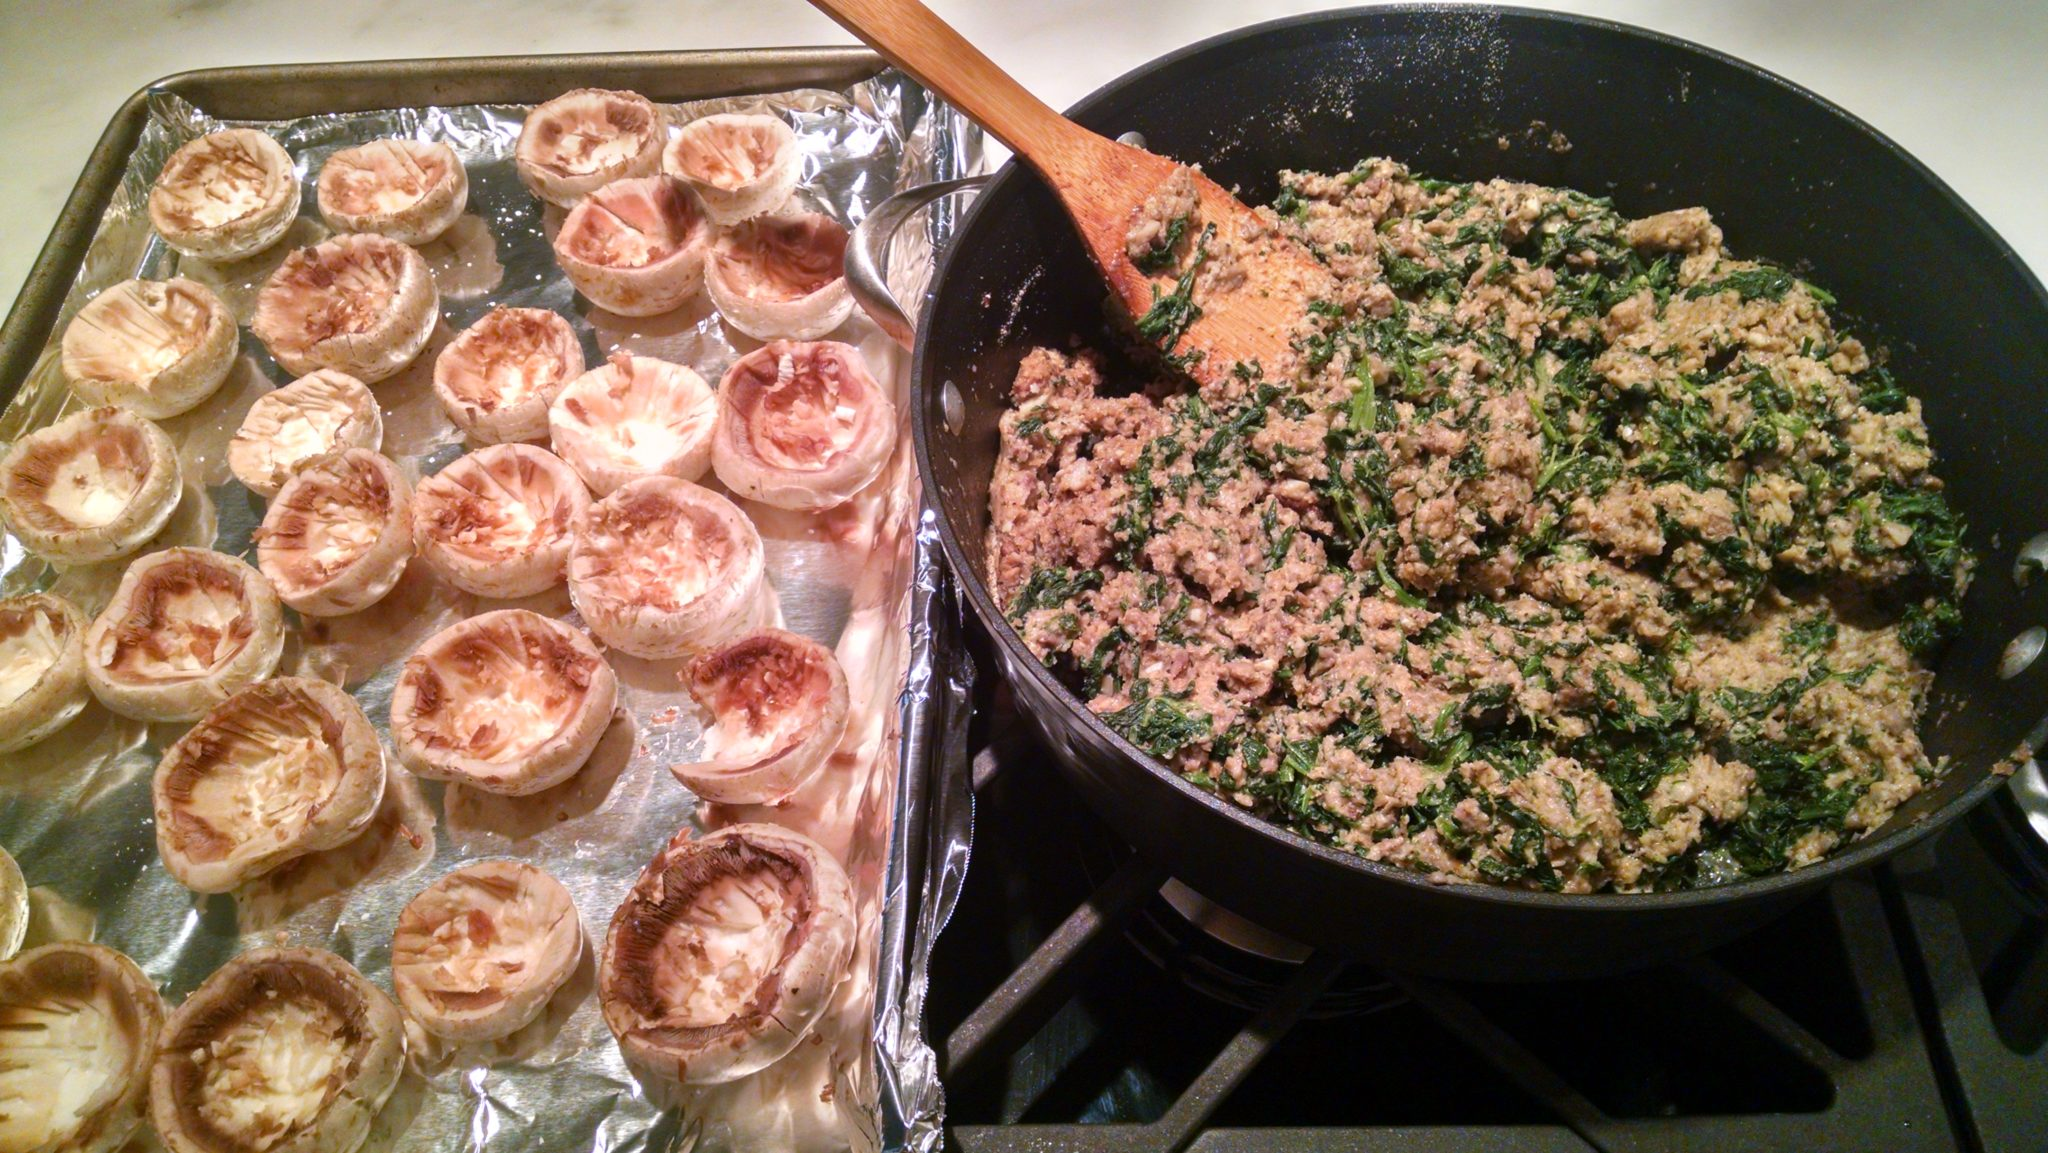 Recipe Thursdays: Stuffed Mushrooms with Sausage & Spinach